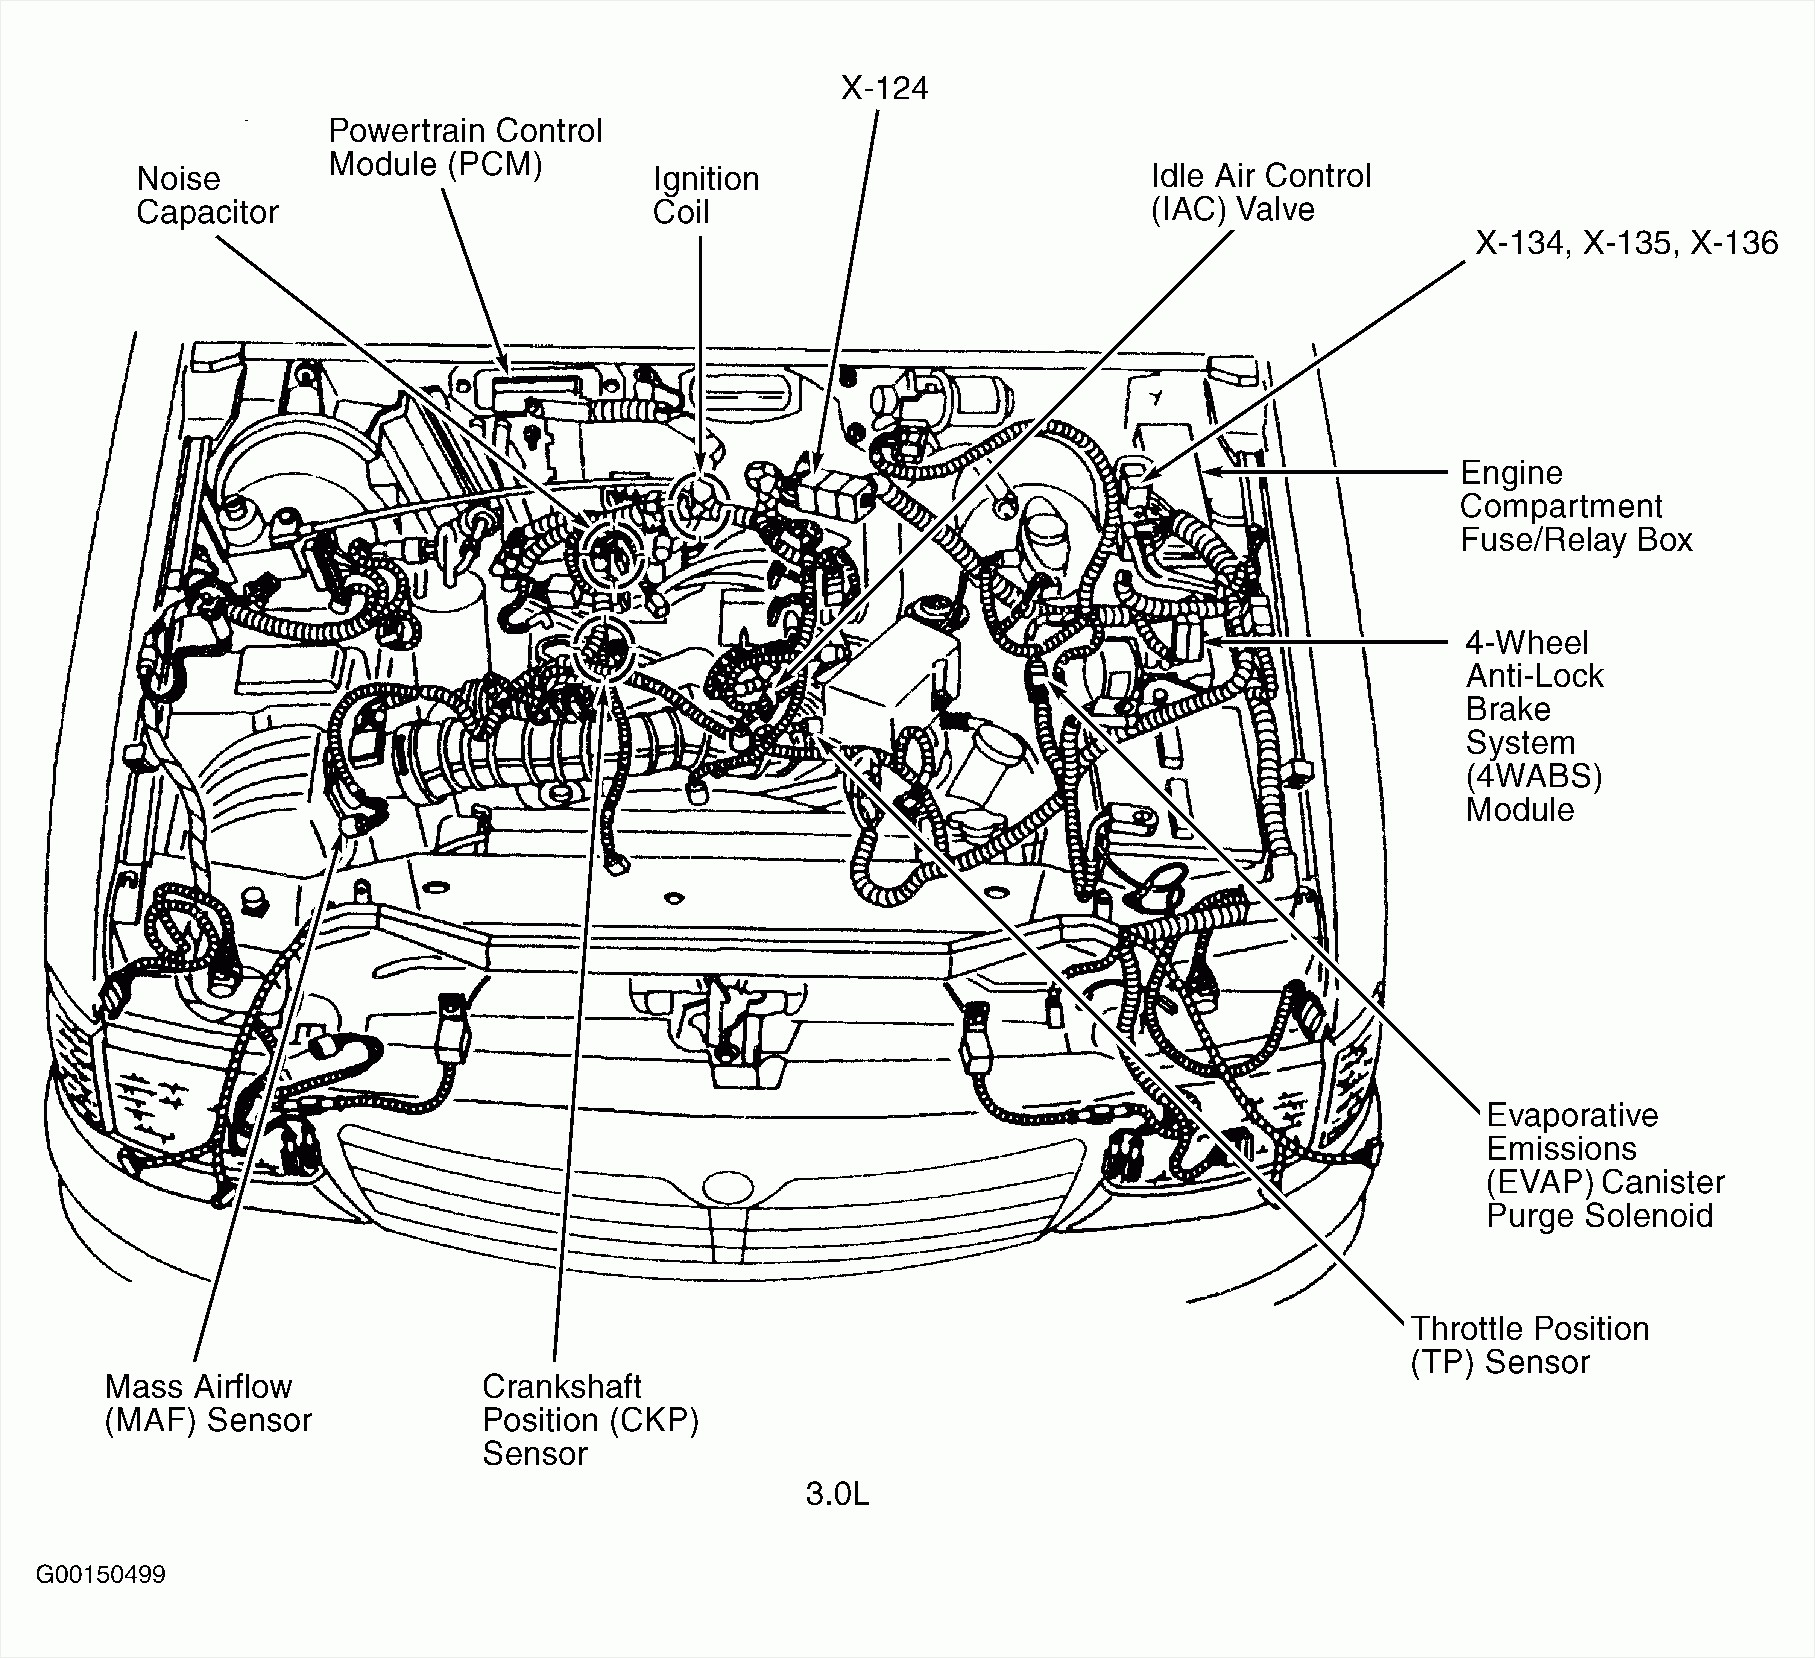 Ford 3 0 V6 Engine Diagram 2004 Mazda 6 V6 Engine Diagram Wiring Diagrams Of Ford 3 0 V6 Engine Diagram